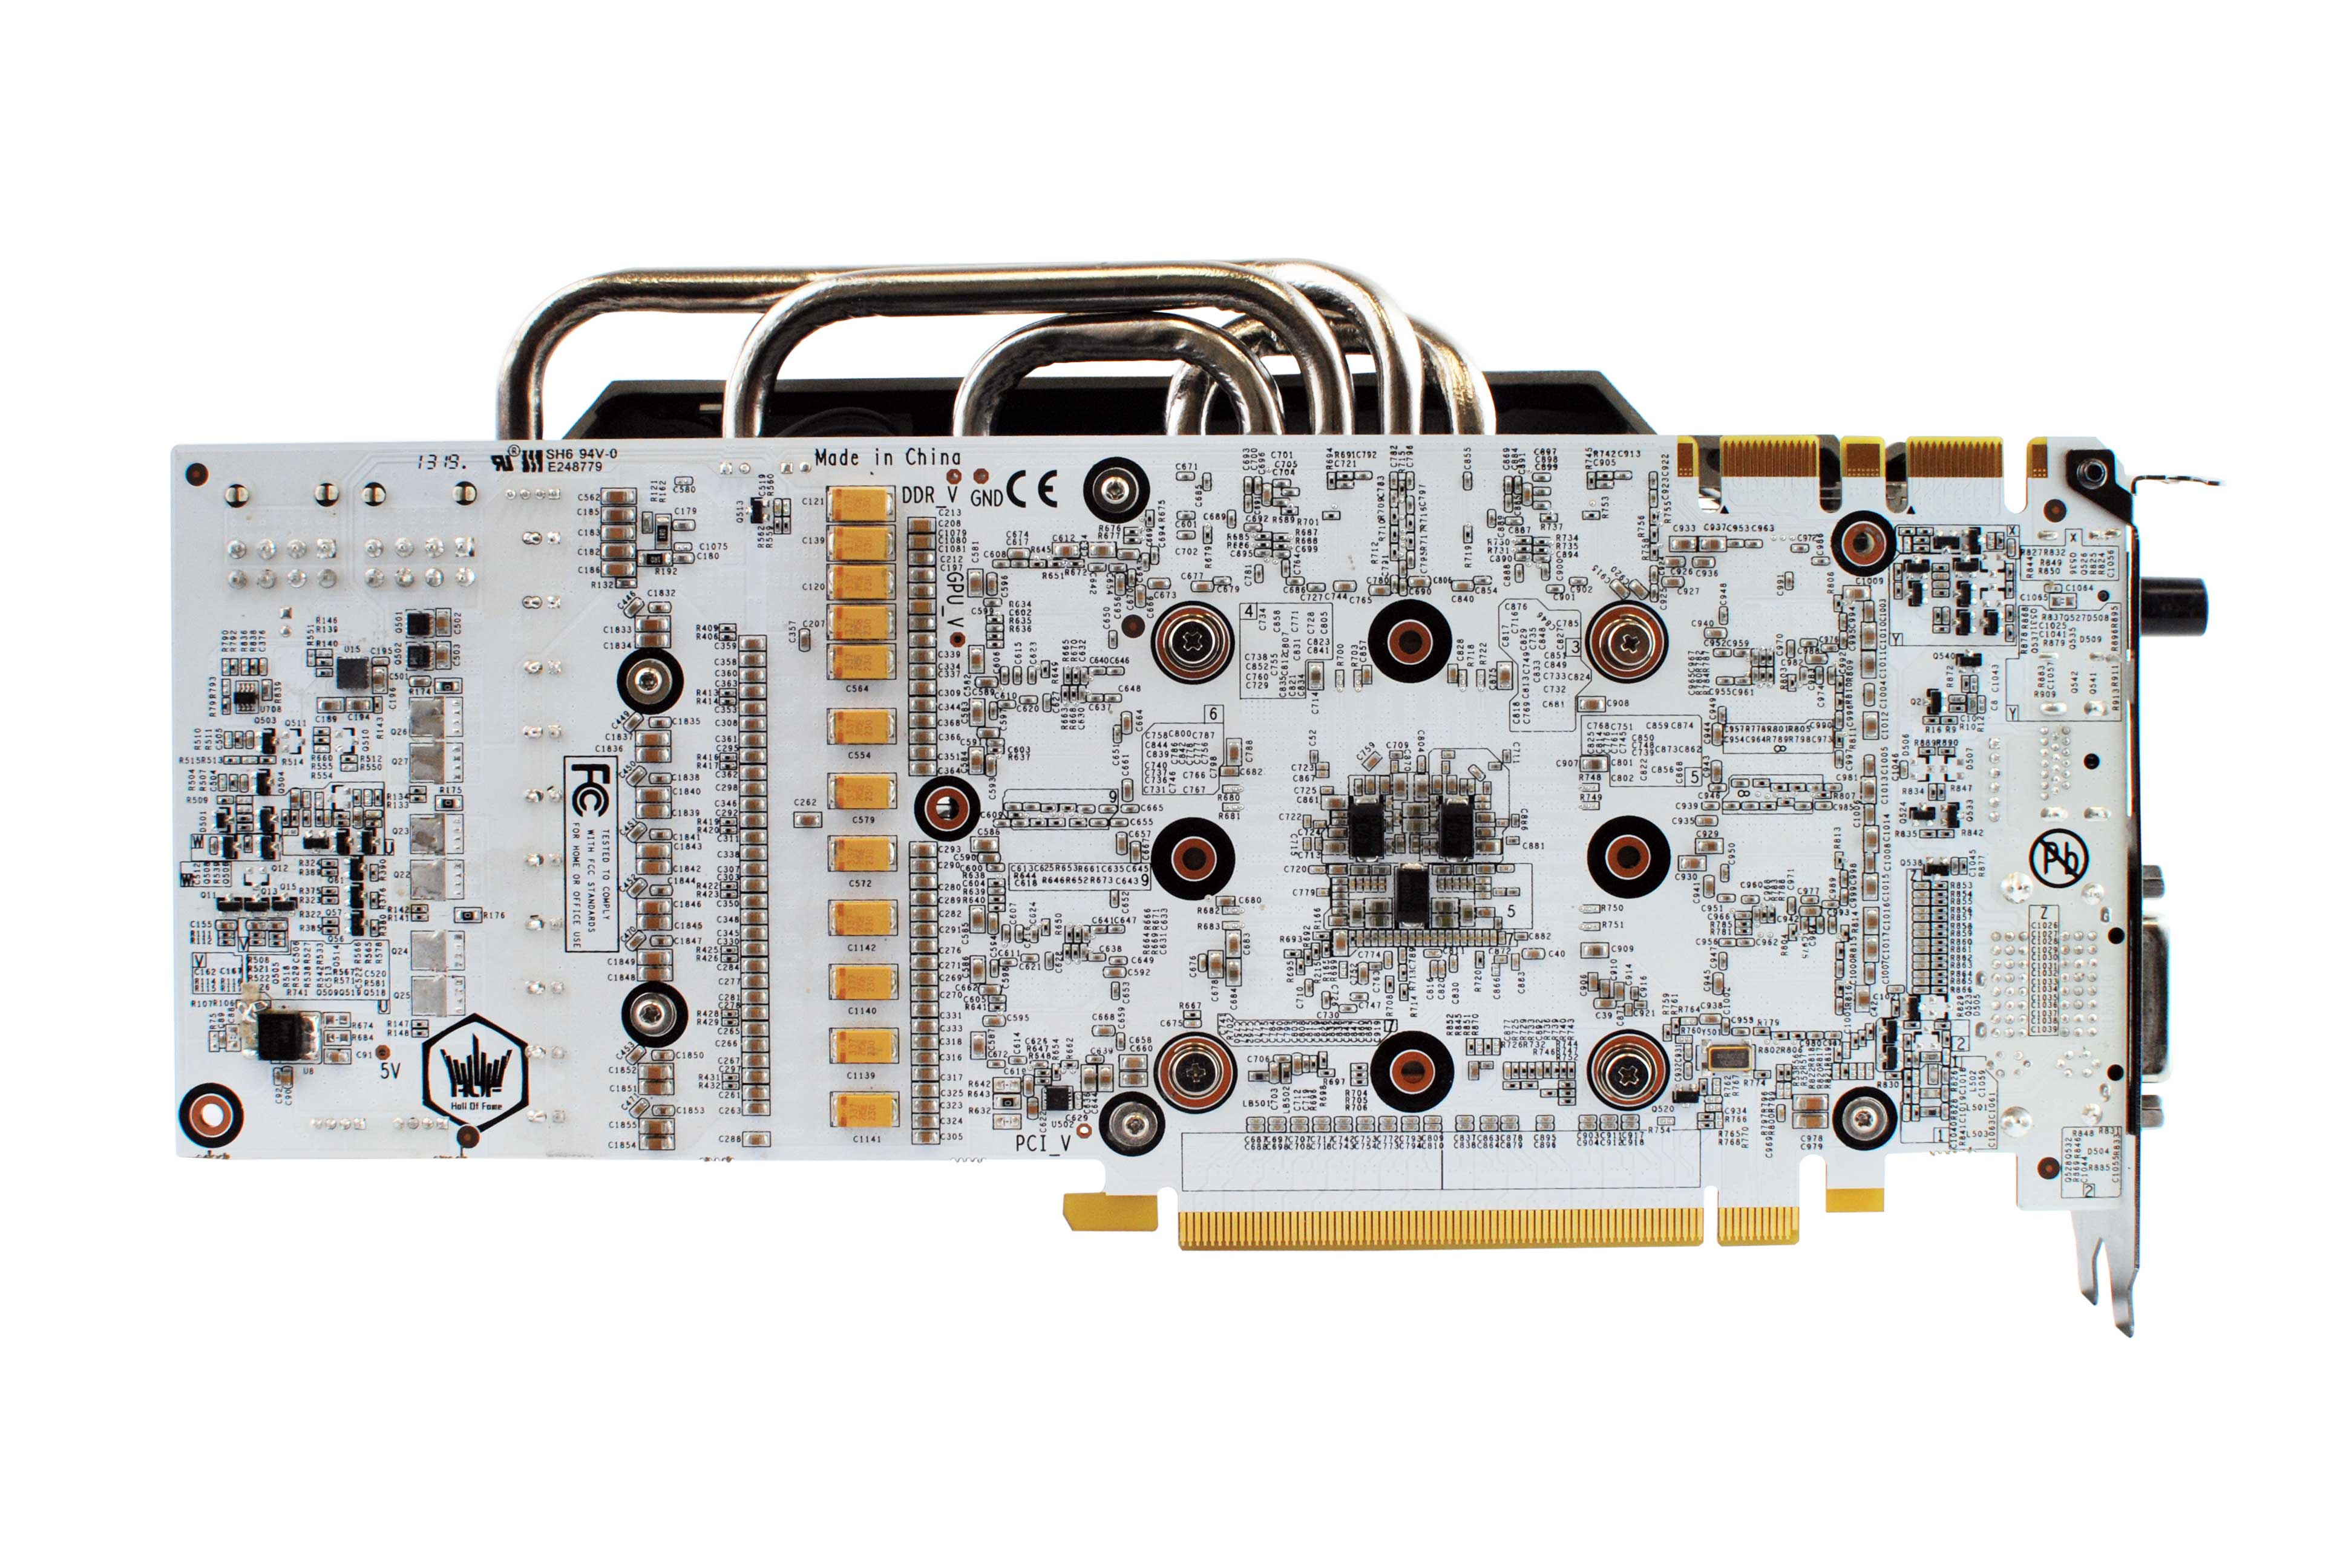 Galaxy Launches GTX 780 OC Hall Of Fame + - With 20% More Clock ...